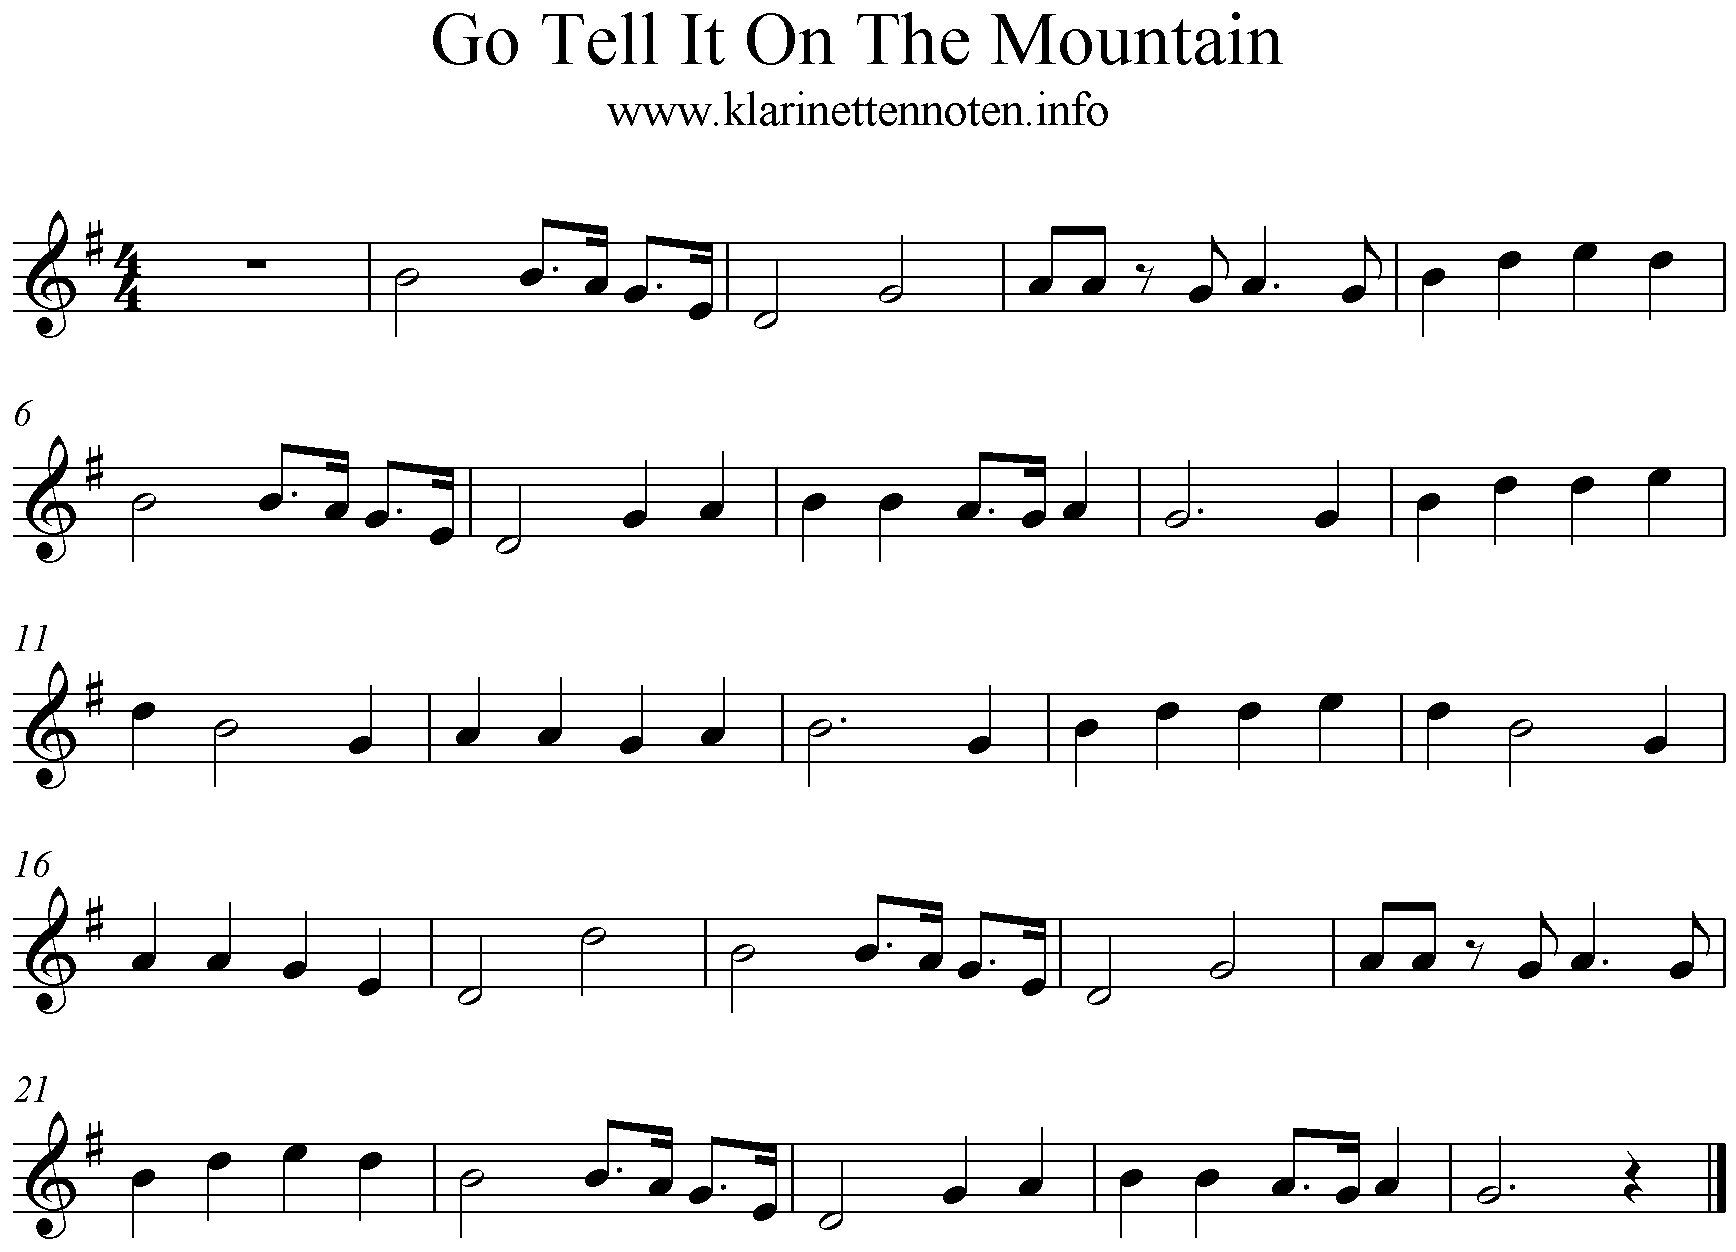 Go Tell it To The Mountain- Klarinettennoten, G-Dur, Clarinet freesheetmusic